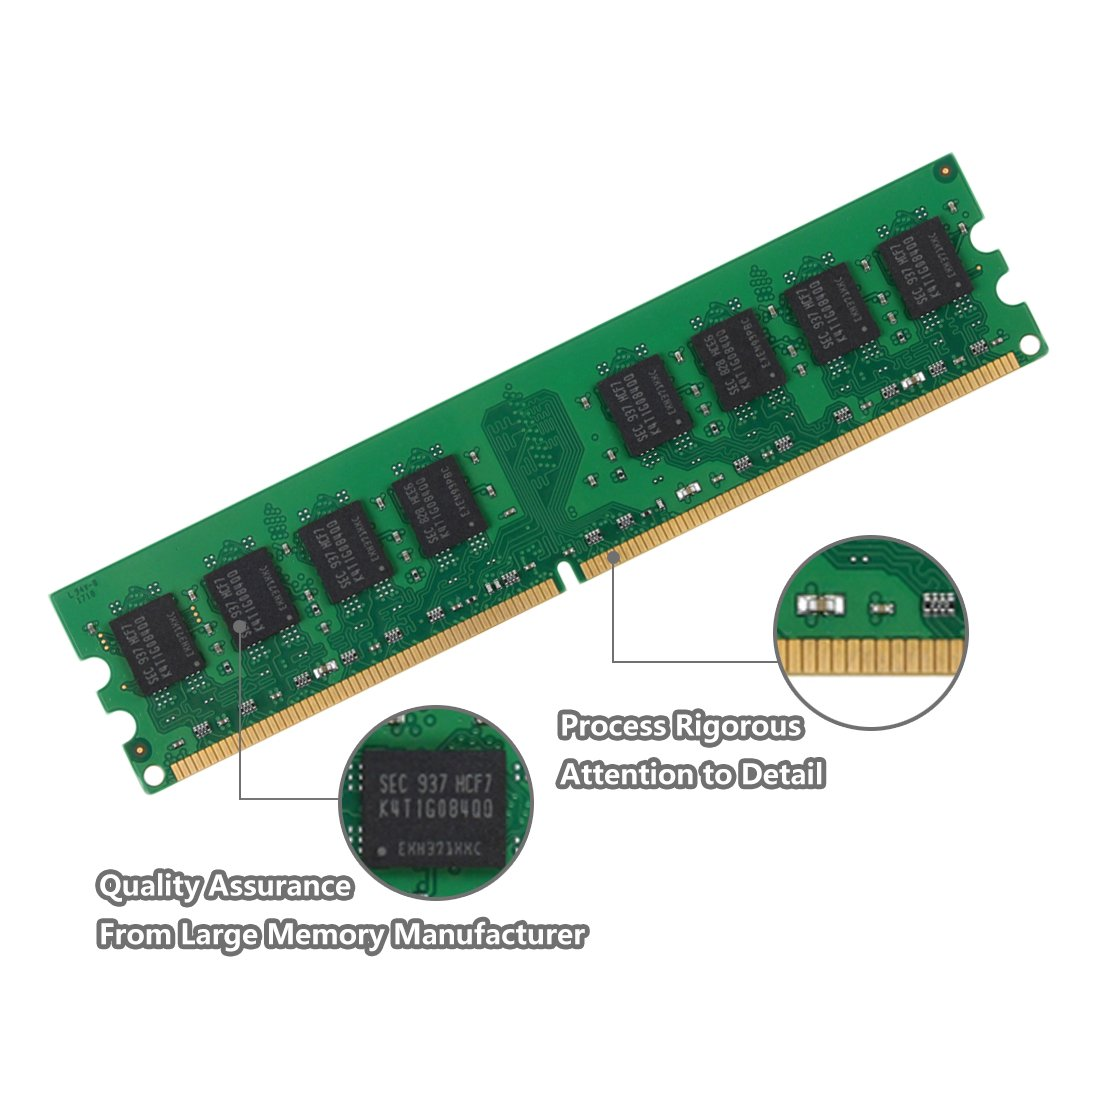 DUOMEIQI 4GB Kit (2 X 2GB) 2RX8 DDR2 800MHz UDIMM PC2-6300 PC2-6400 PC2-6400U CL6 1.8v (240 PIN) Non-ECC Unbuffered Desktop Memory RAM Module Compatible with Intel AMD System by D DUOMEIQI (Image #4)